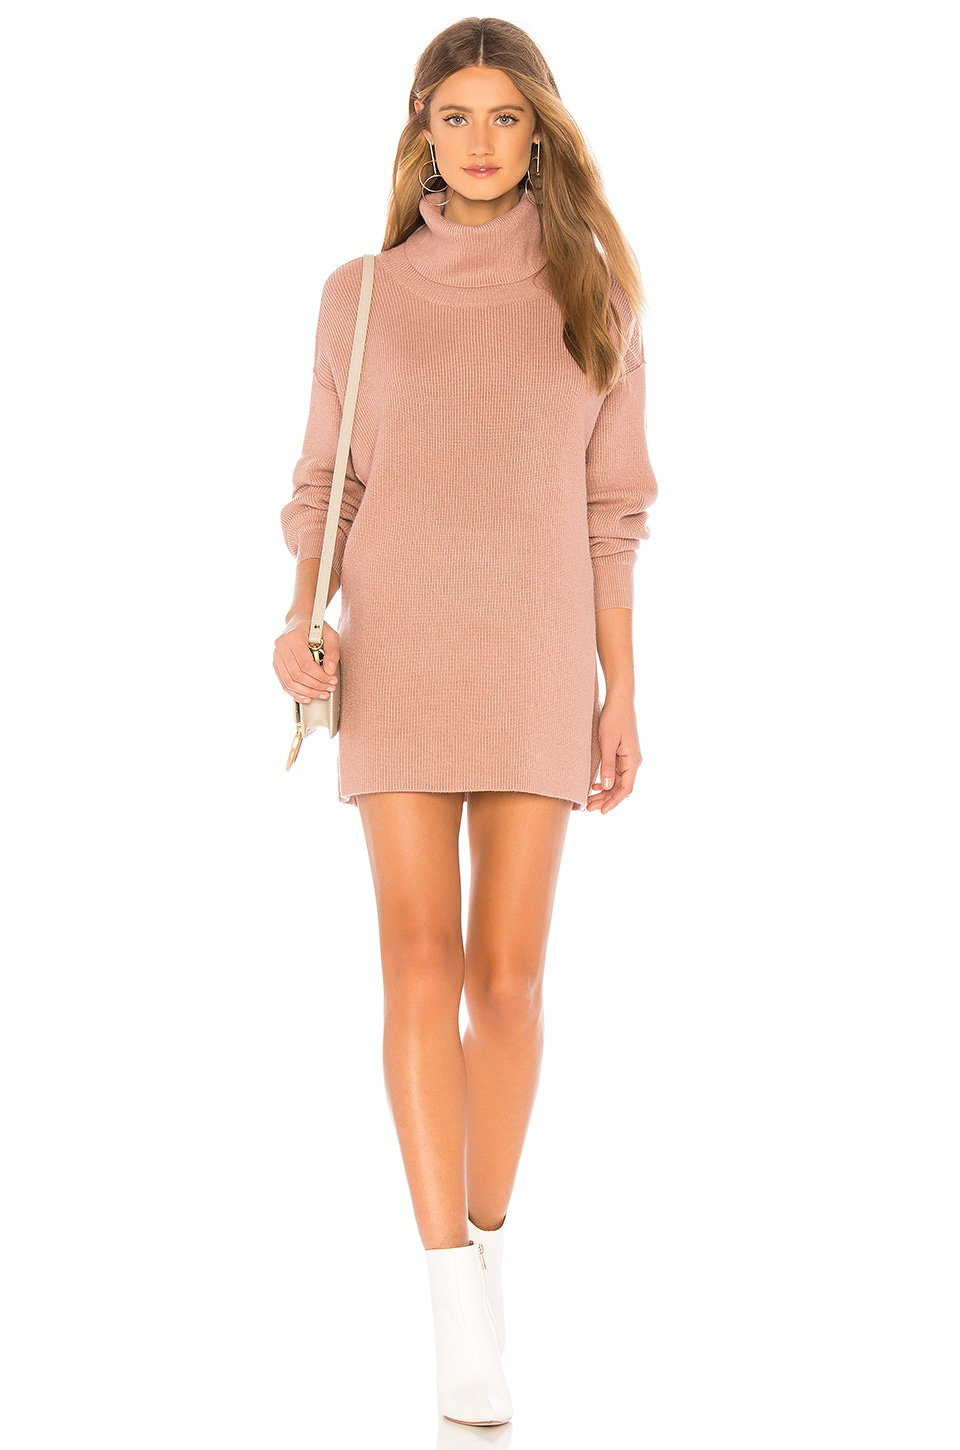 Free People Softly Structured Tunic in Mauve